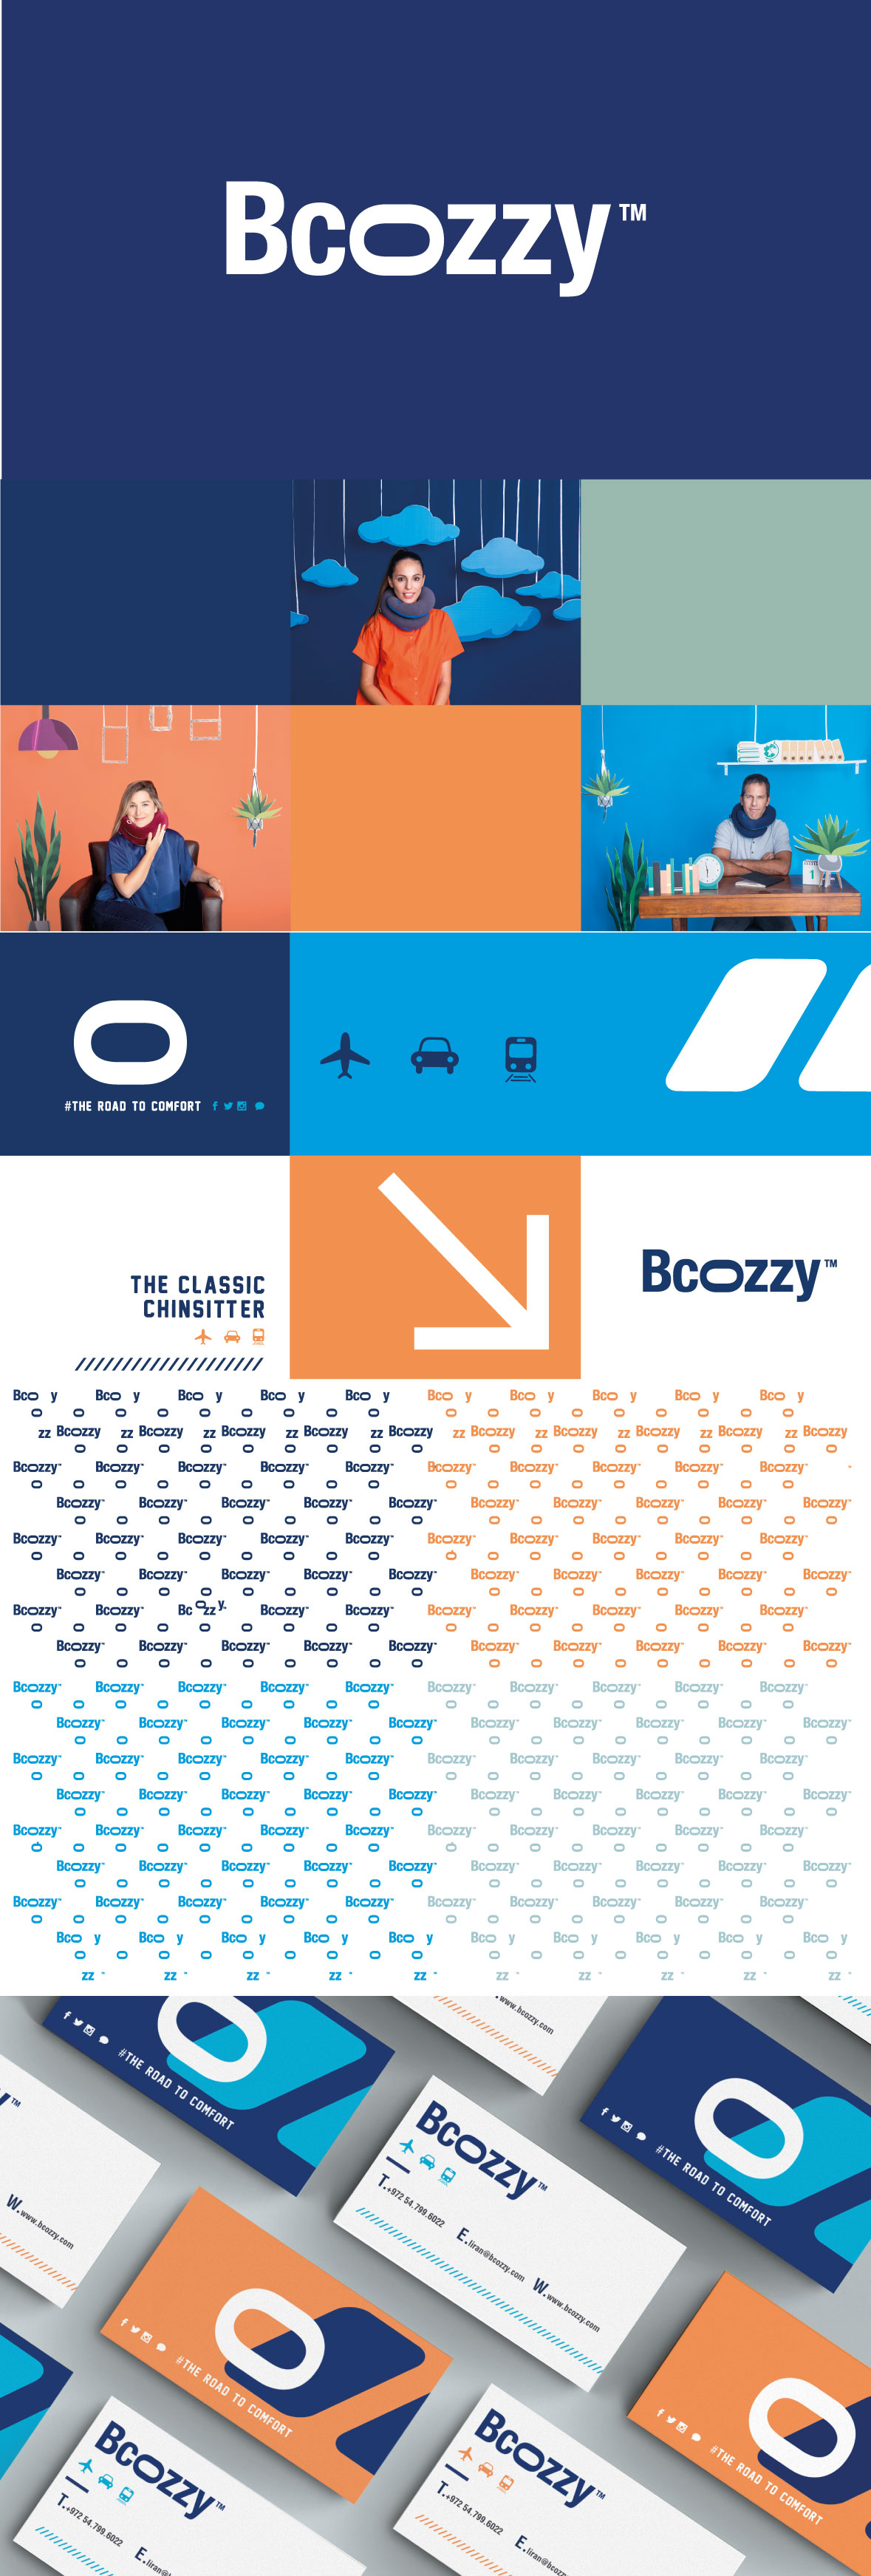 NFH_Bcozzy_Brand_GraphicDesign_Patterns